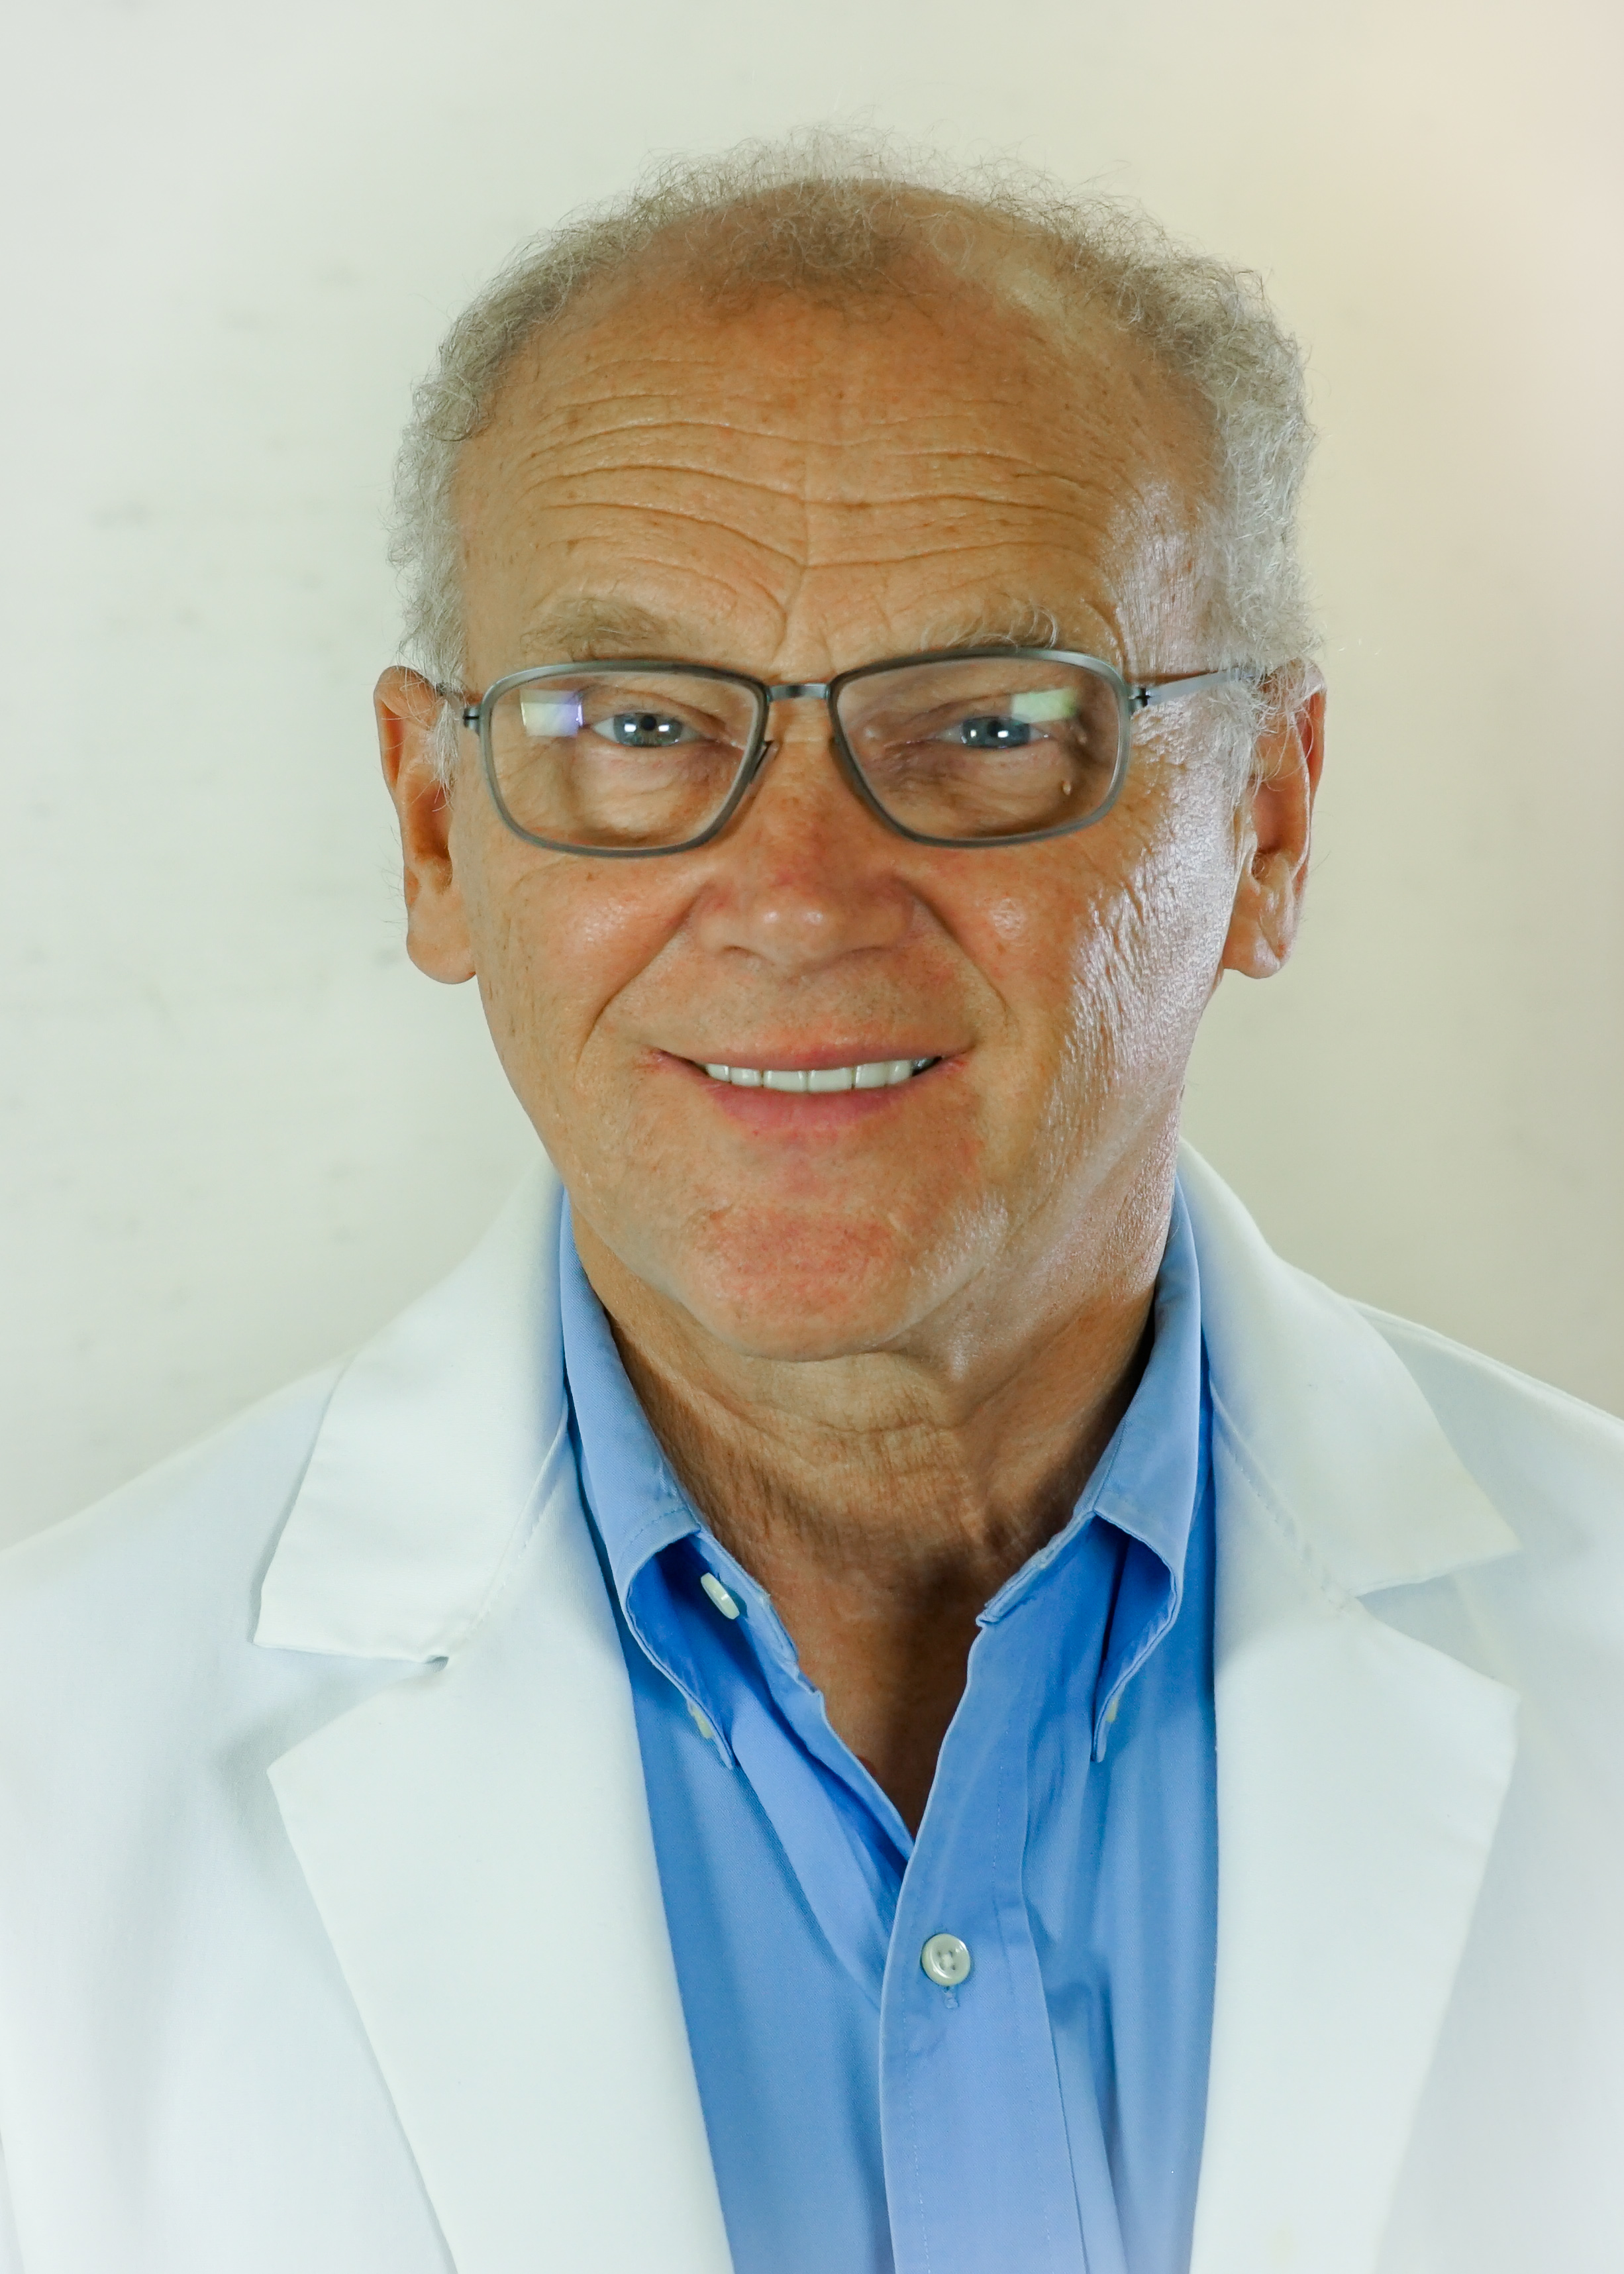 Meet Dr. Peter Kadar, L. Ac. D.O.M. founder of the Acupuncture Center of NJ